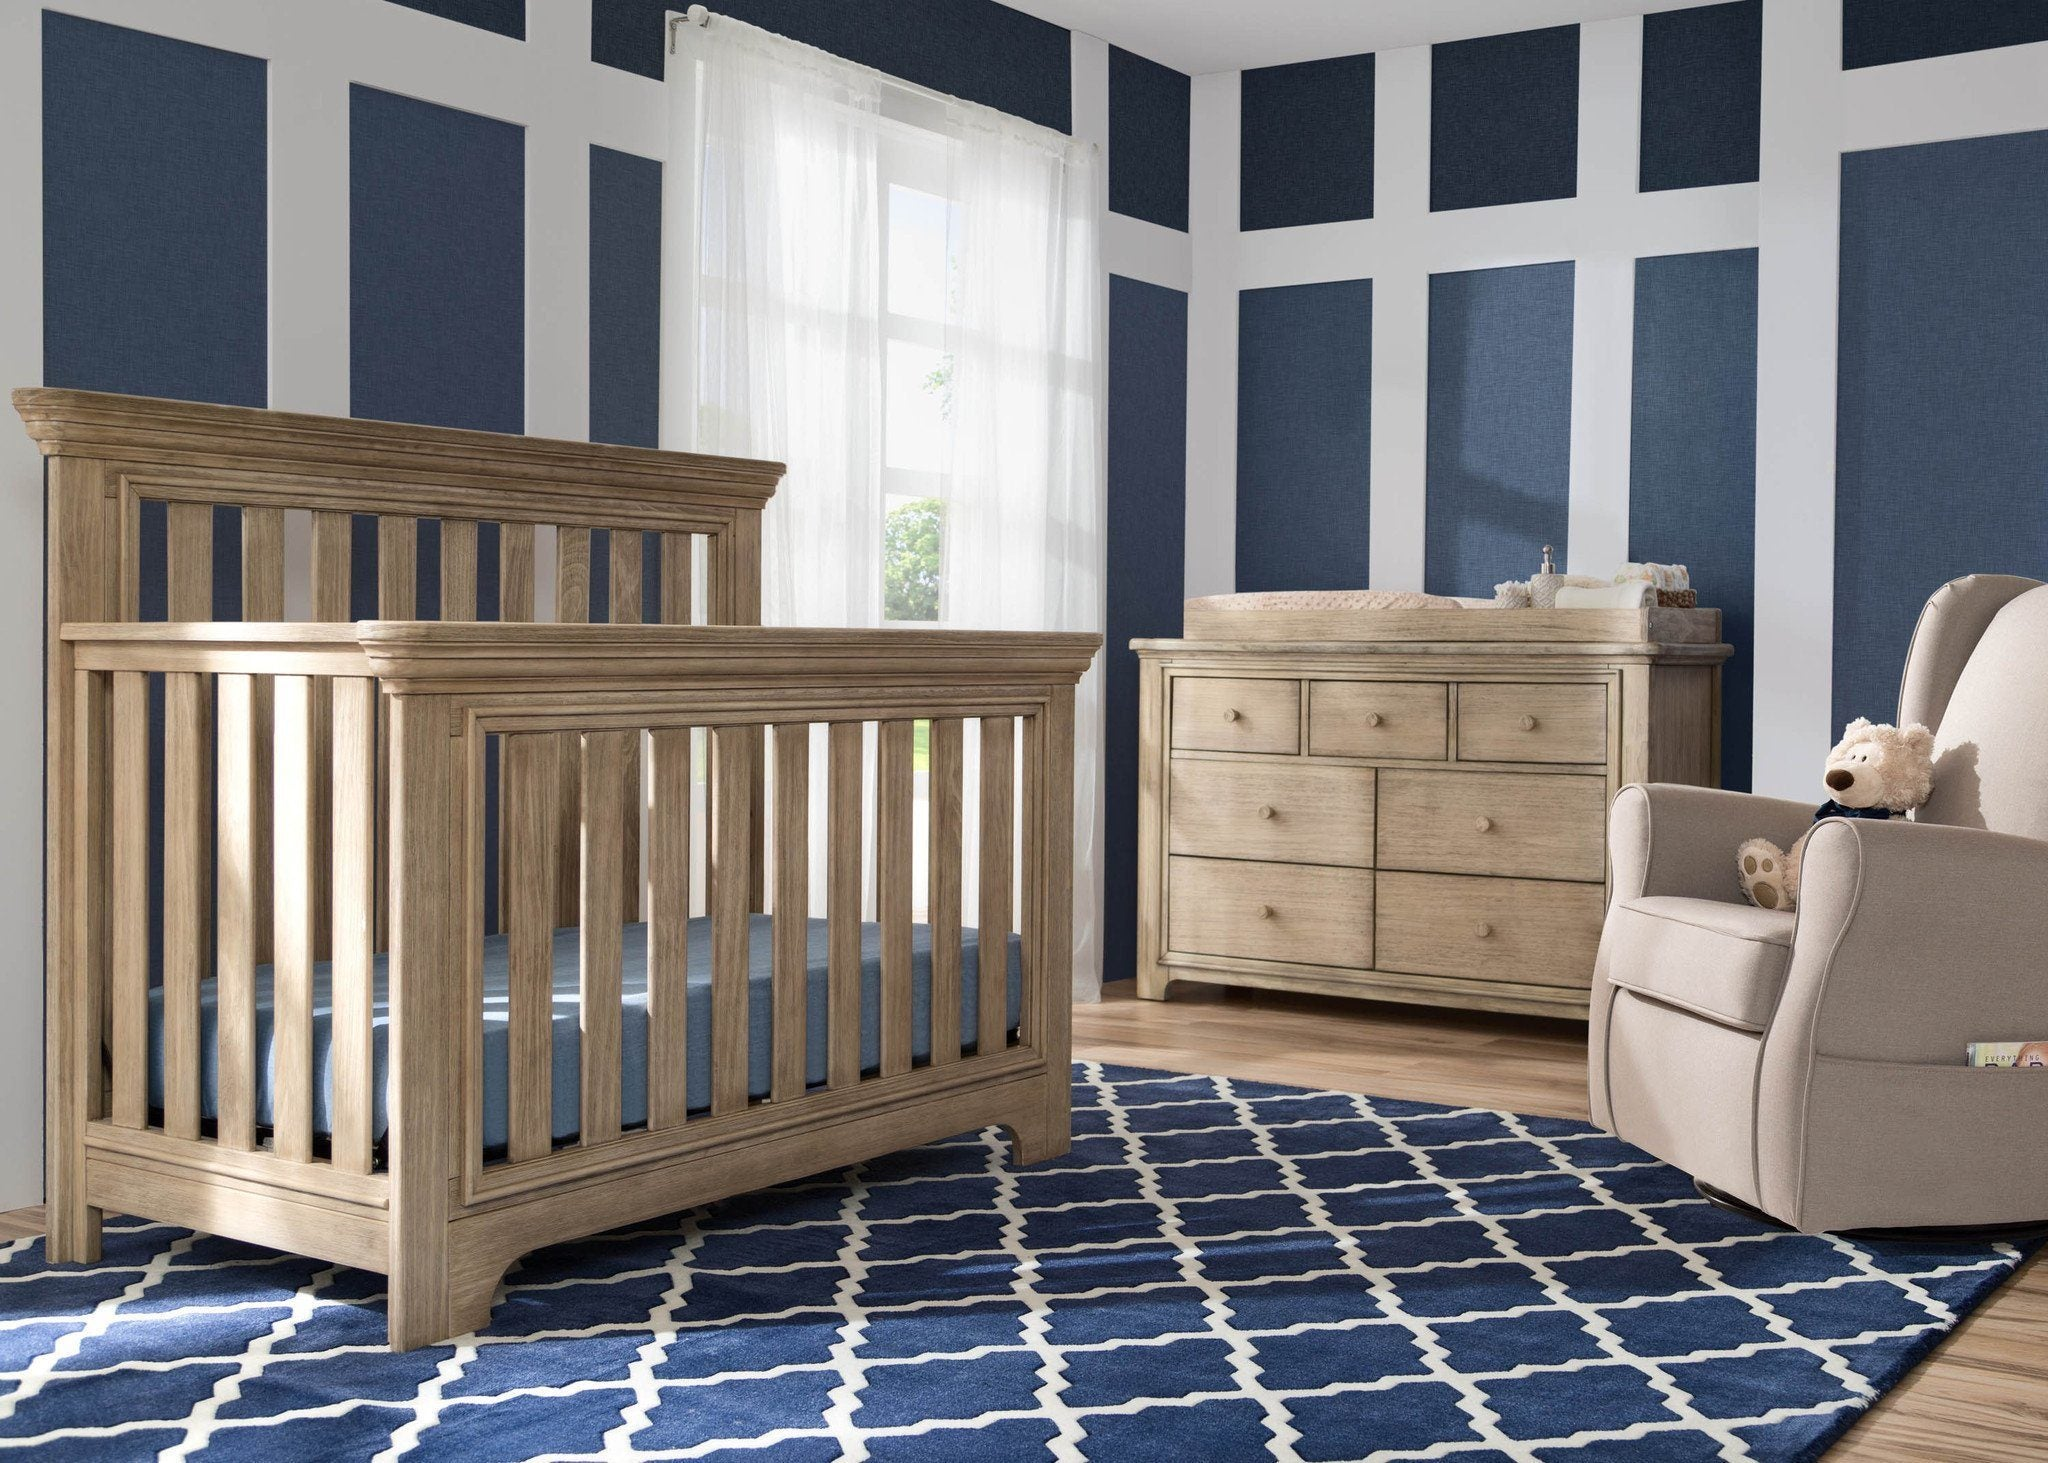 Serta Rustic Whitewash (112) Langley 4-in-1 Crib Room View b1b for Langley 4-in-1 Crib